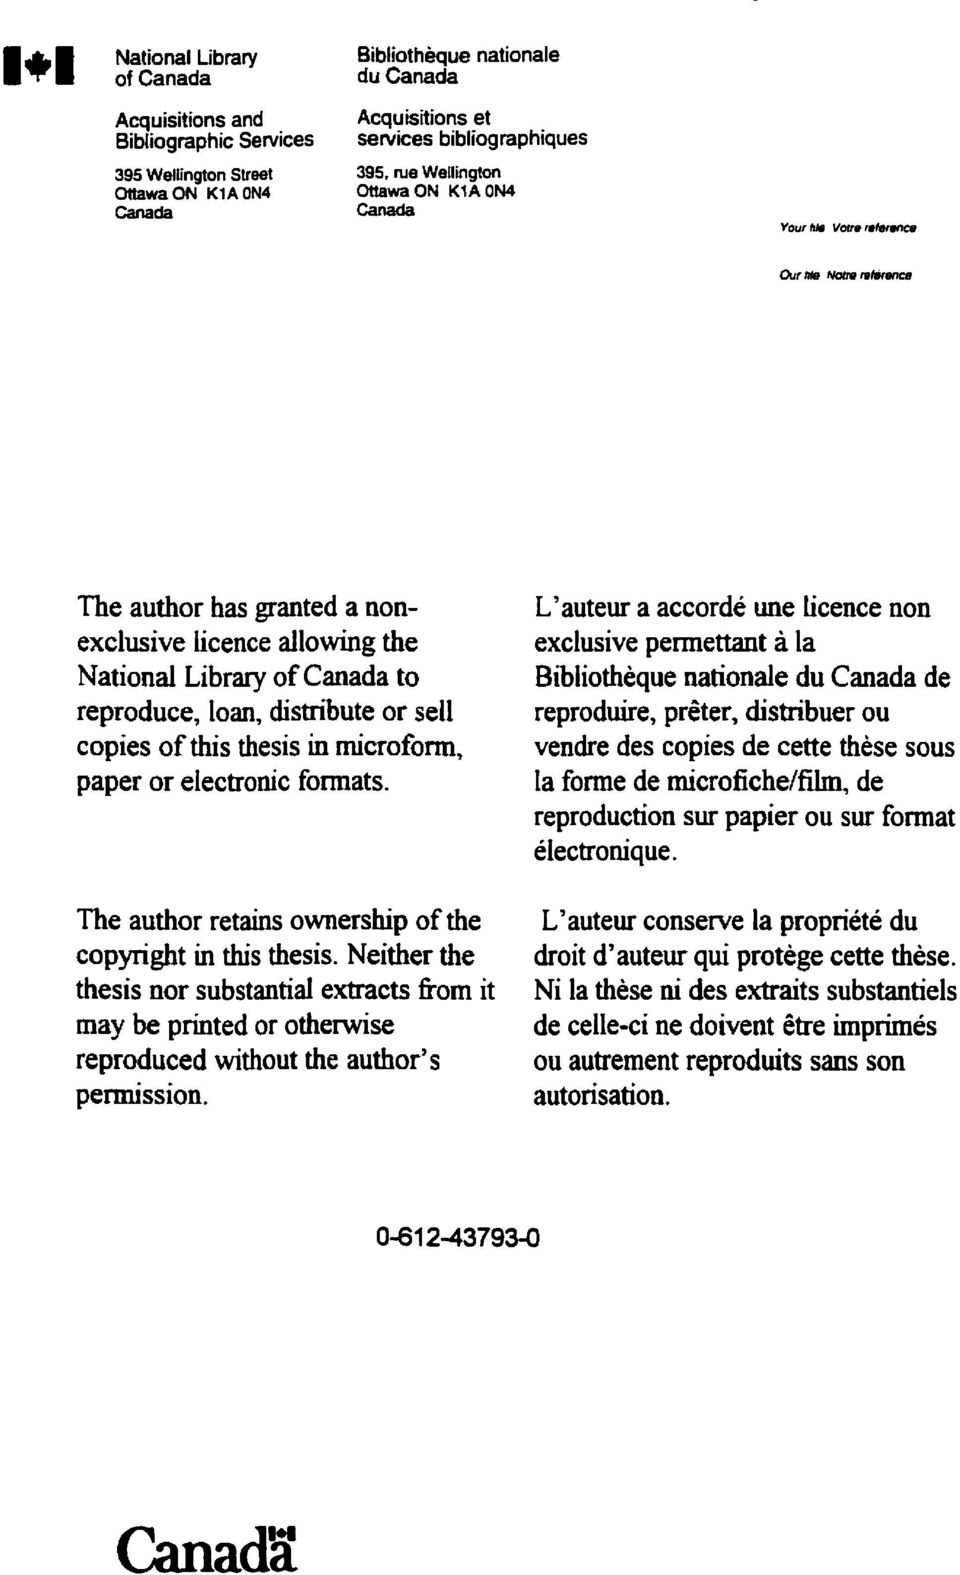 The author has granted a nonexclusive licence aflowing the National Library of Canada to reproduce, Loan, distribute or sel1 copies of this thesis in microform, paper or electronic formats.